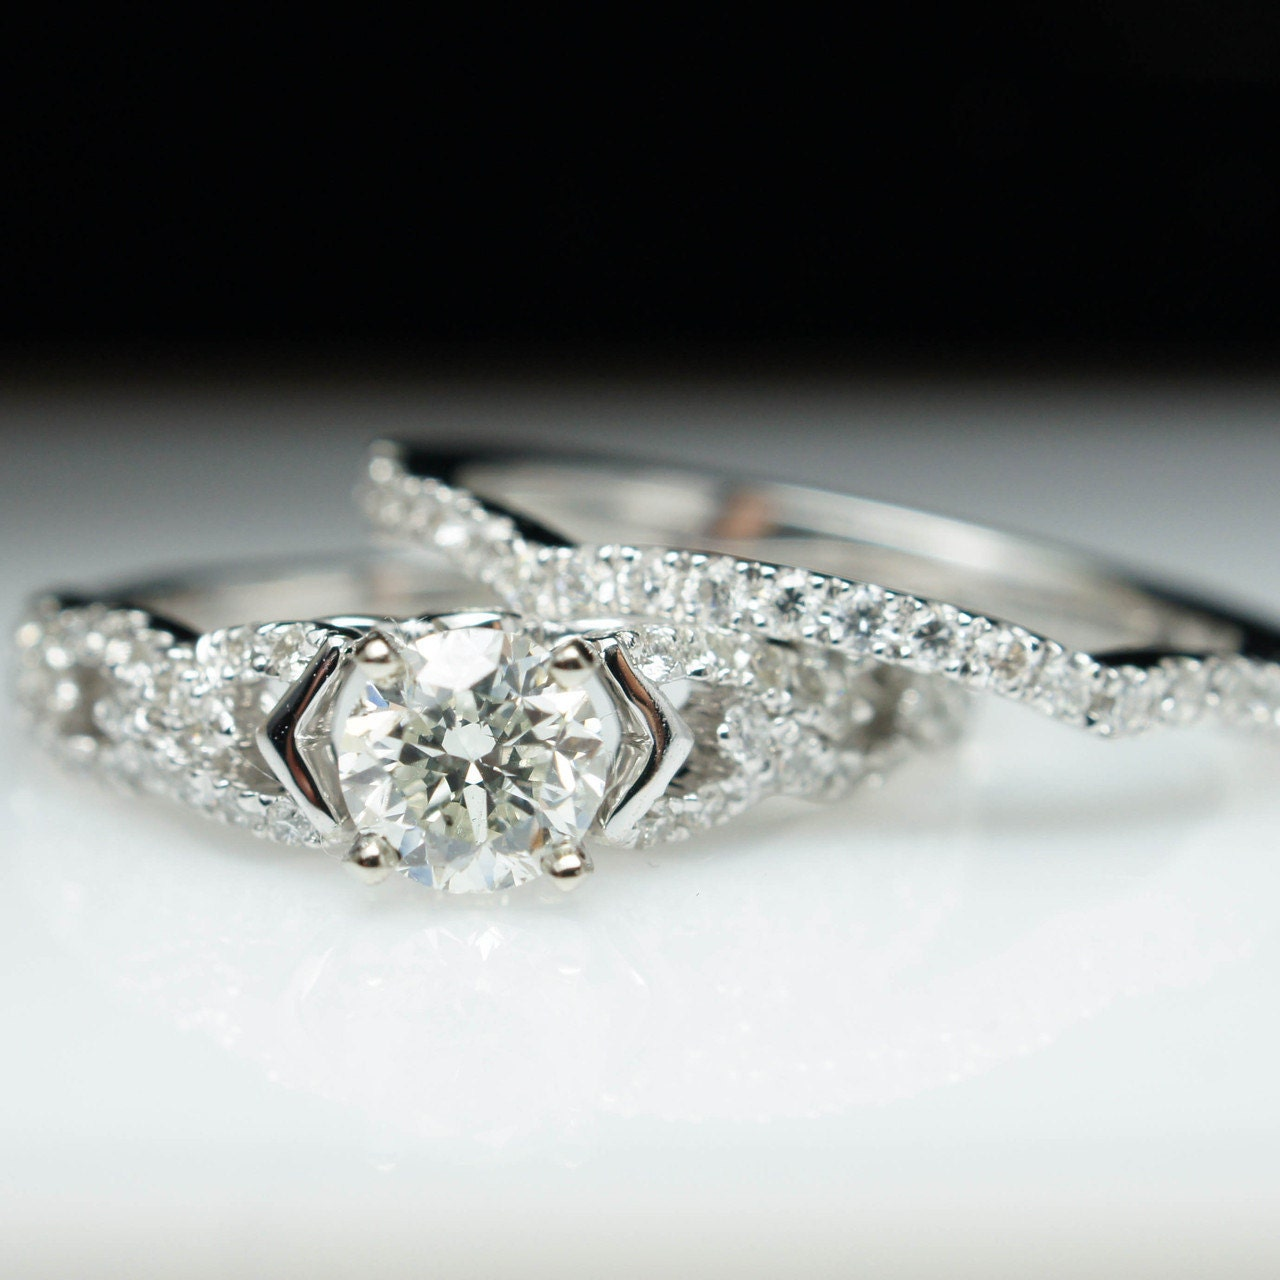 Vintage Style Bridal Set 1ct Solitaire Diamond Engagement Ring